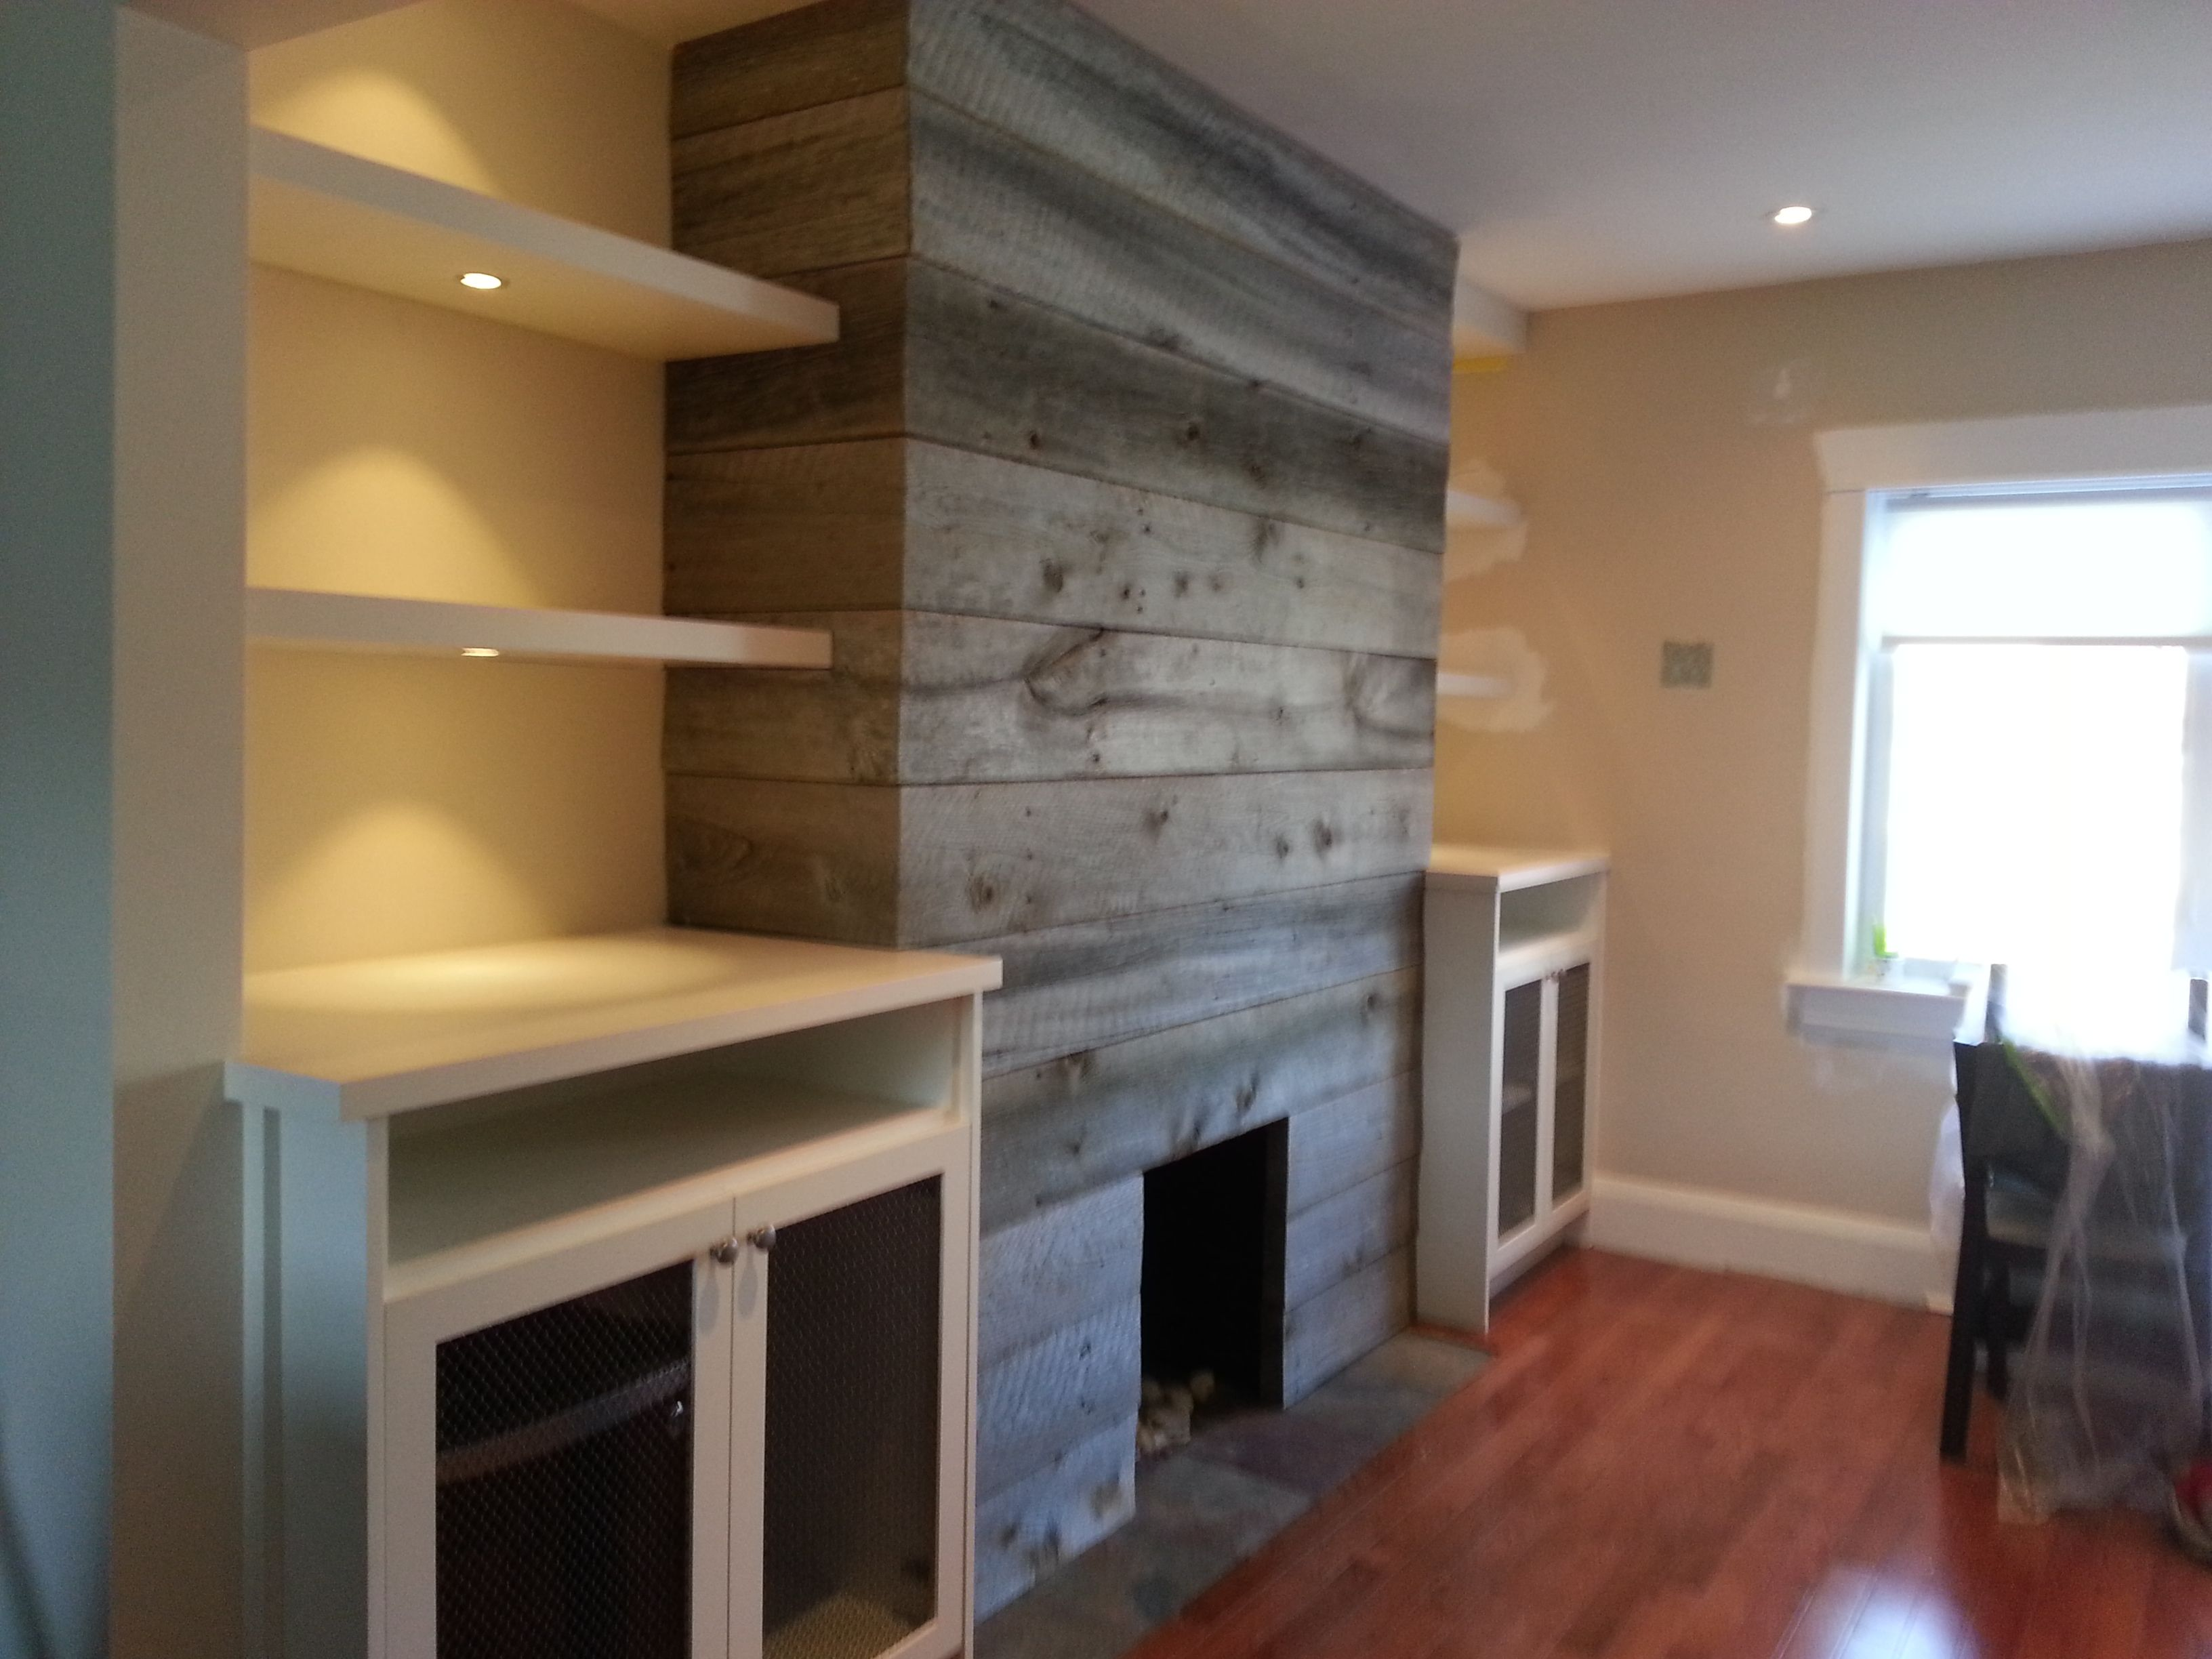 Barn Board Kitchen Cabinets Fireplace Clad In Barn Board With White Cabinets And